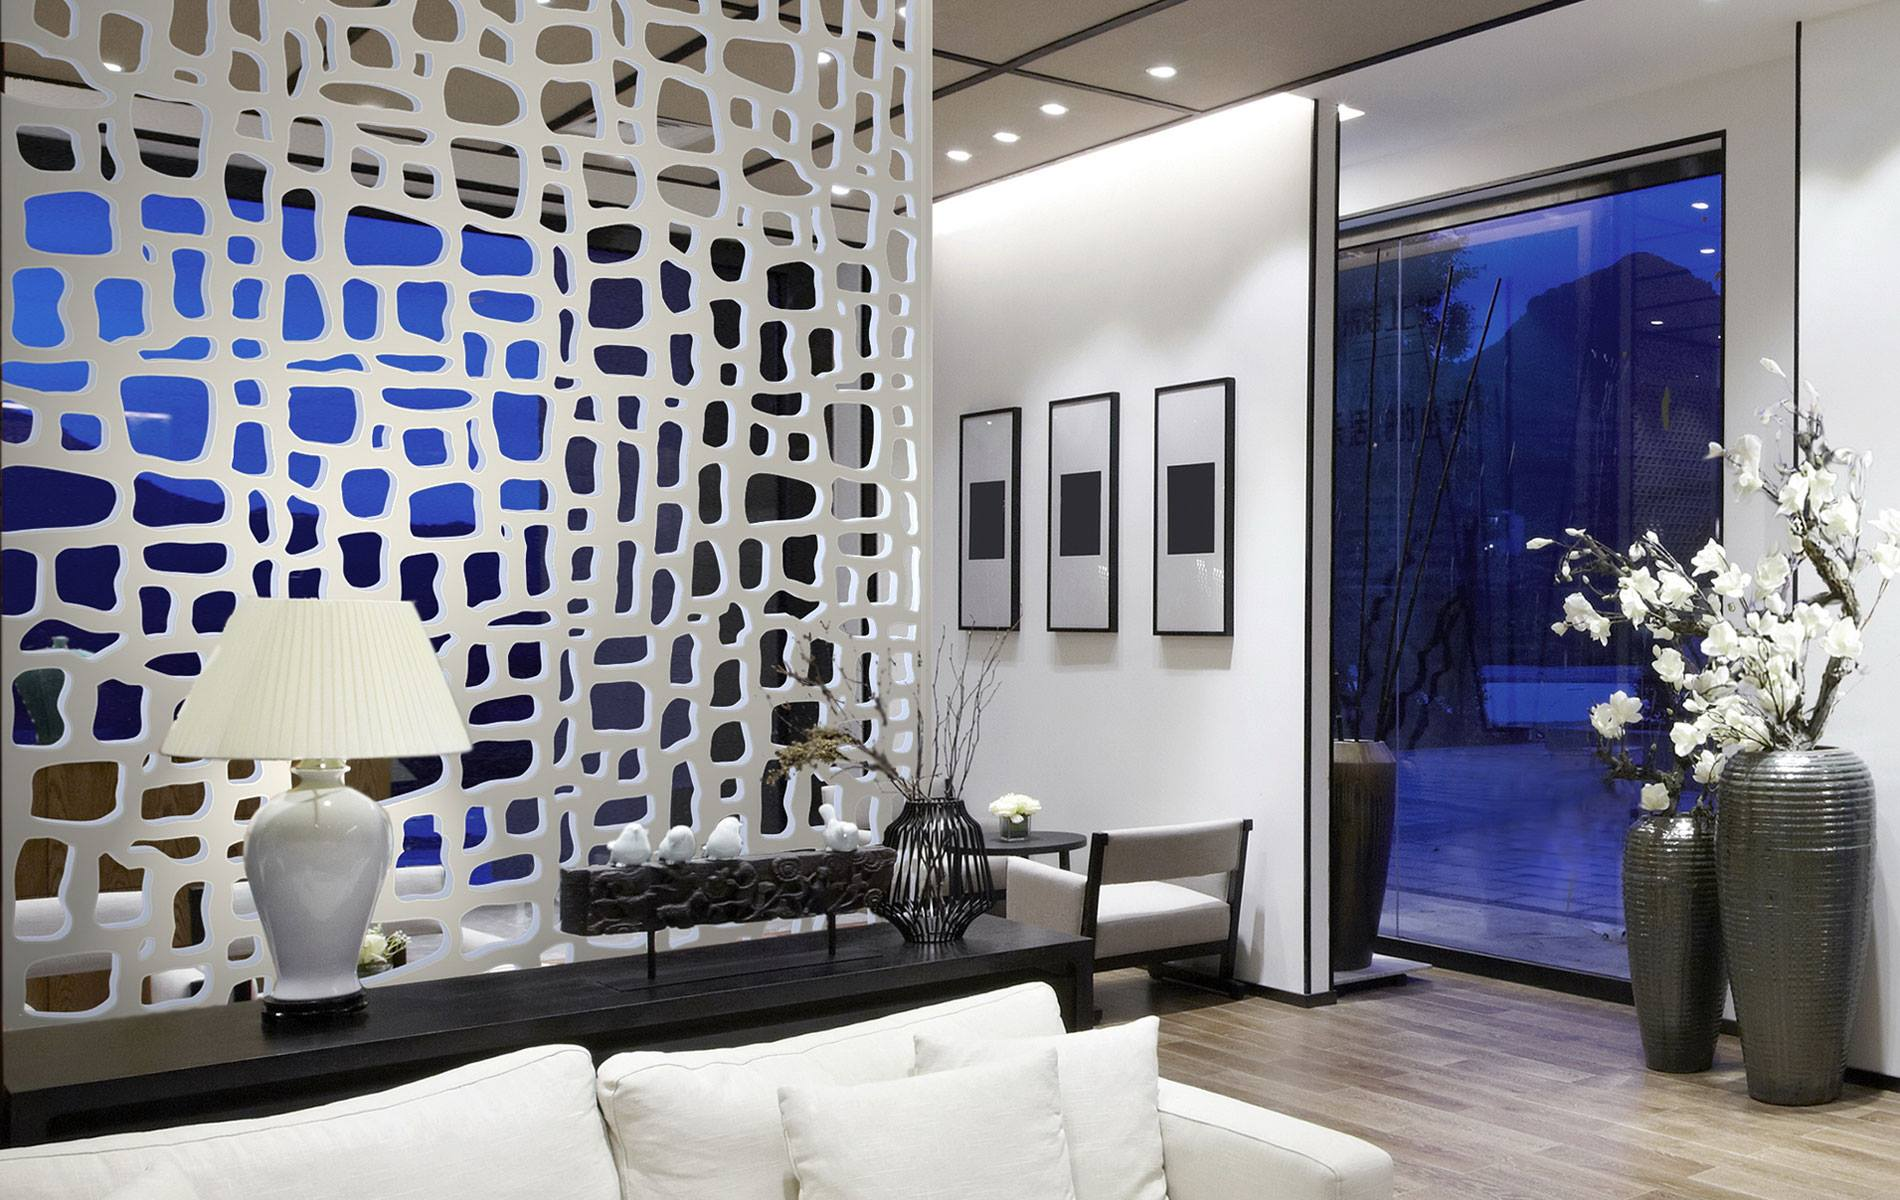 30 CREATIVE PARTITION IDEAS THAT CAN REPLACE WALLS on Creative Wall Design Ideas  id=64193